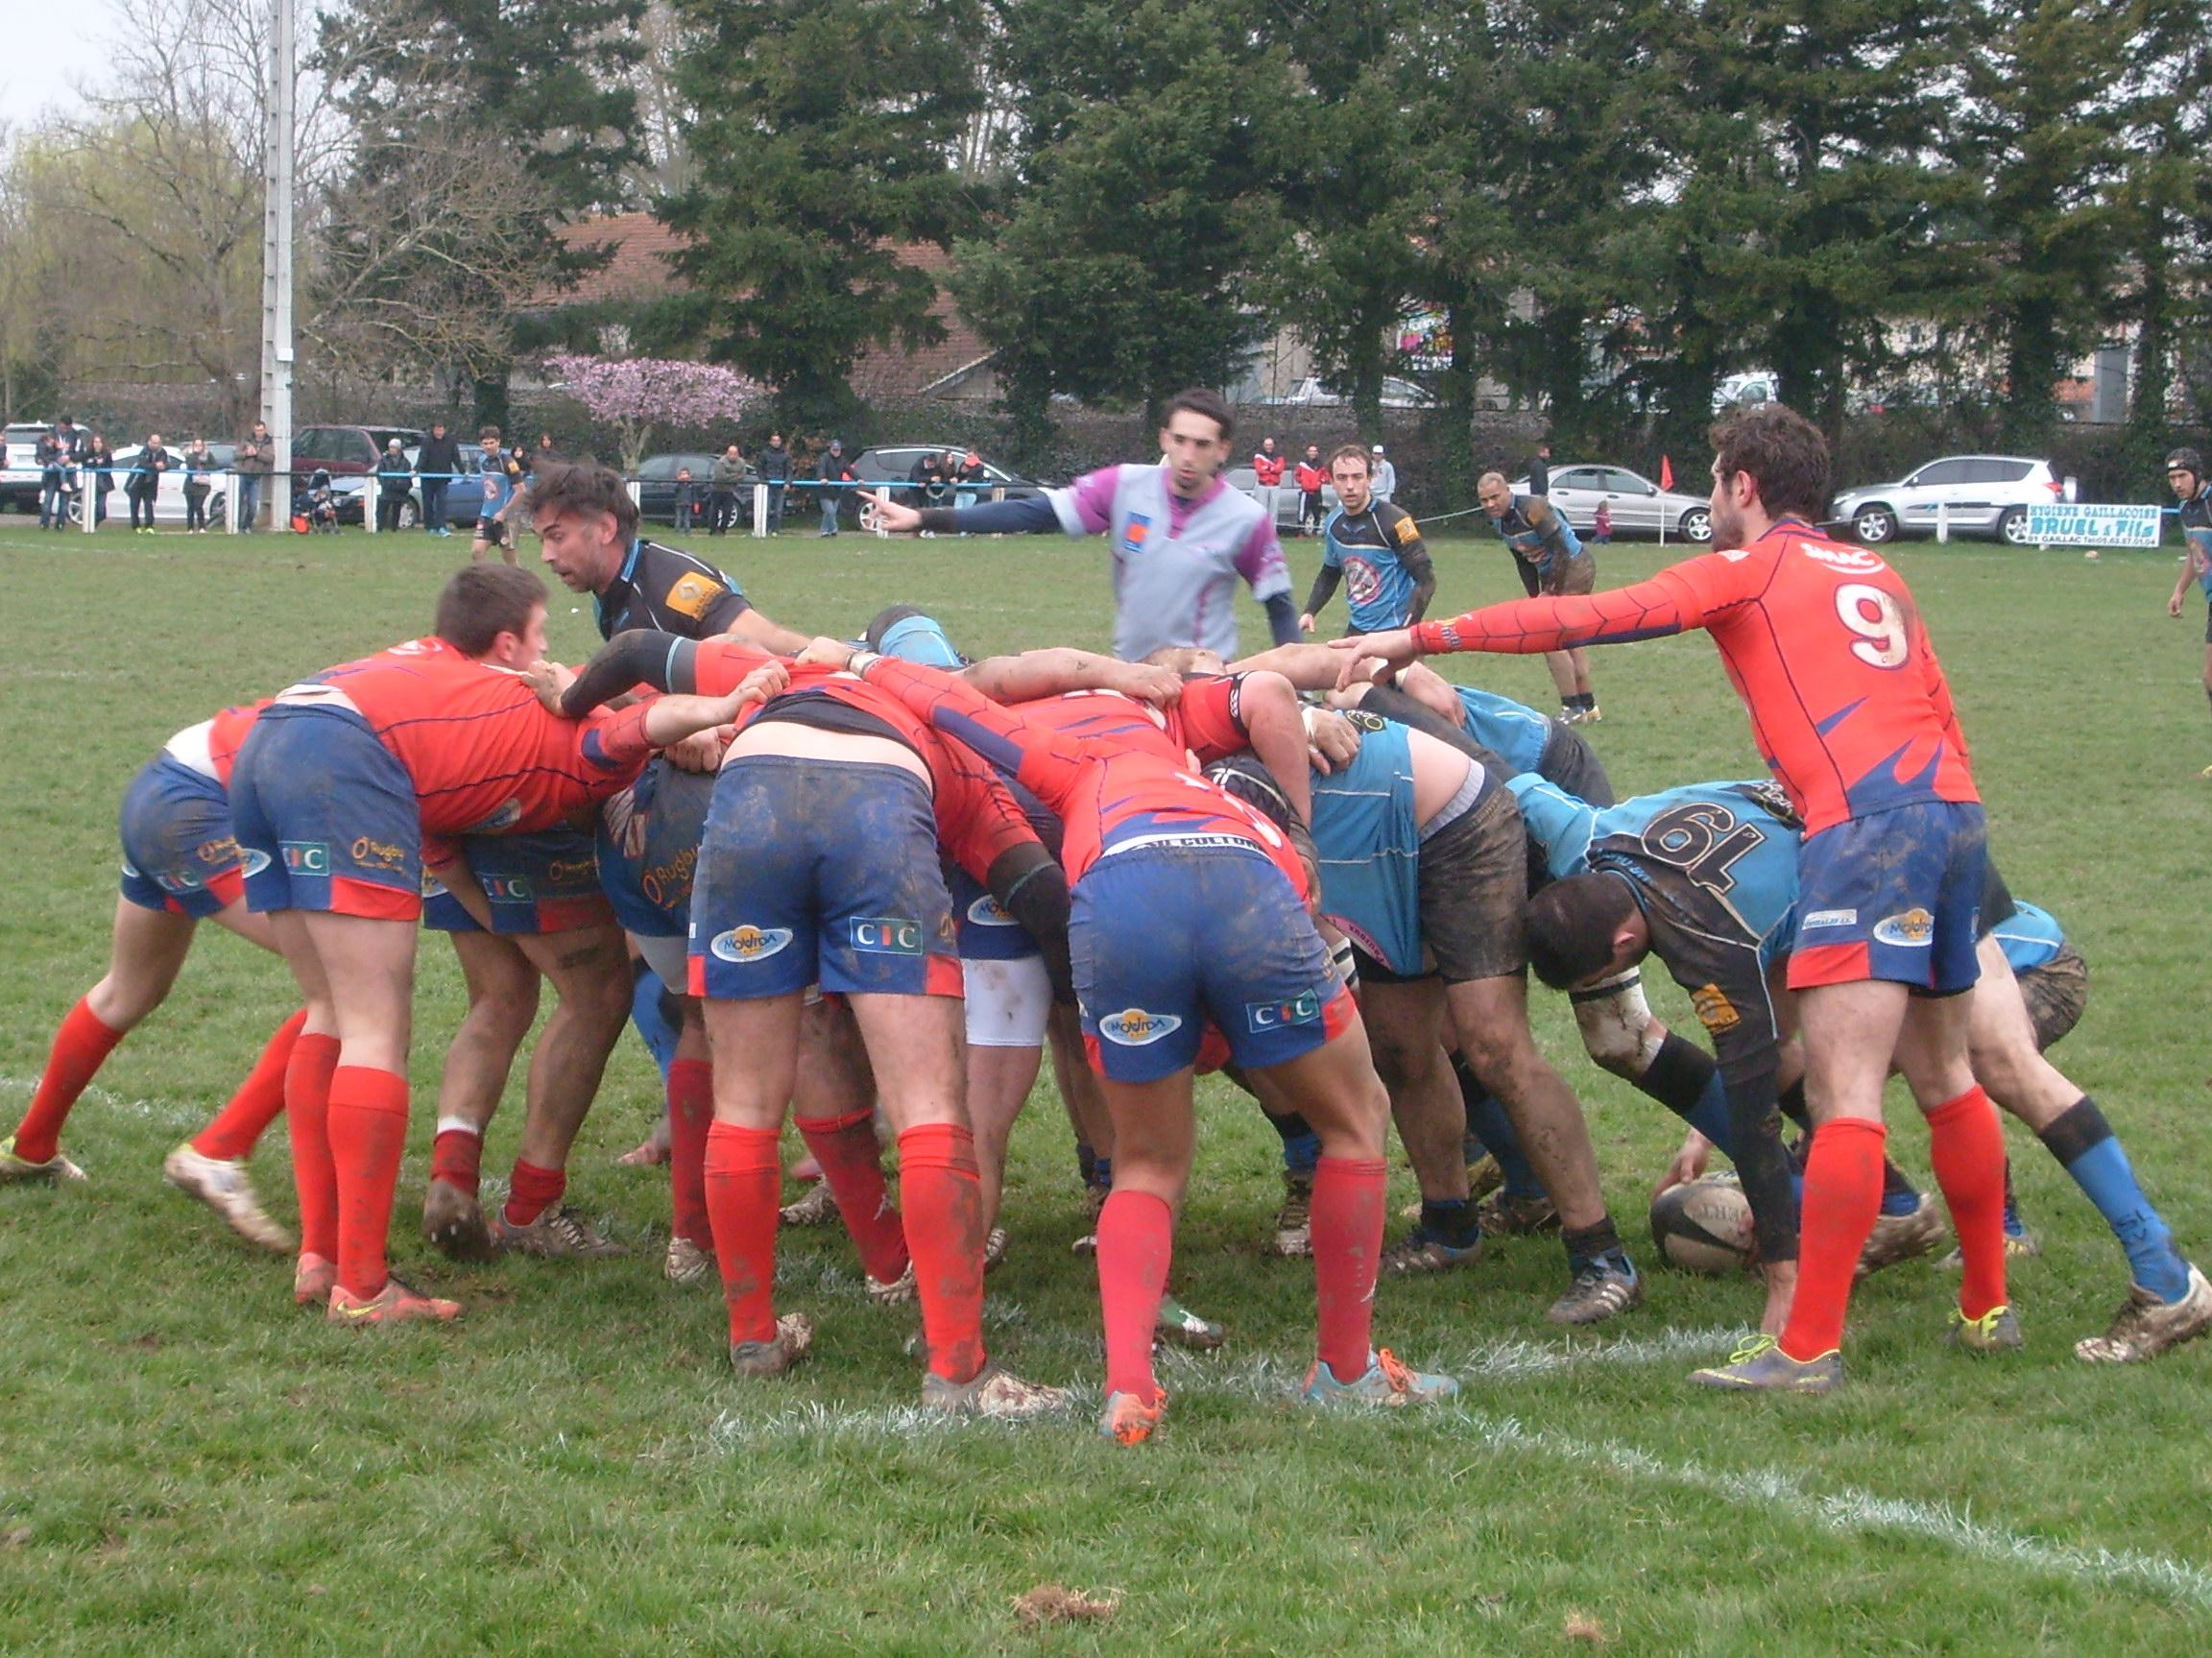 Rugby : Muret s'impose à 14 !?resize=w[750]h[420]e[true]